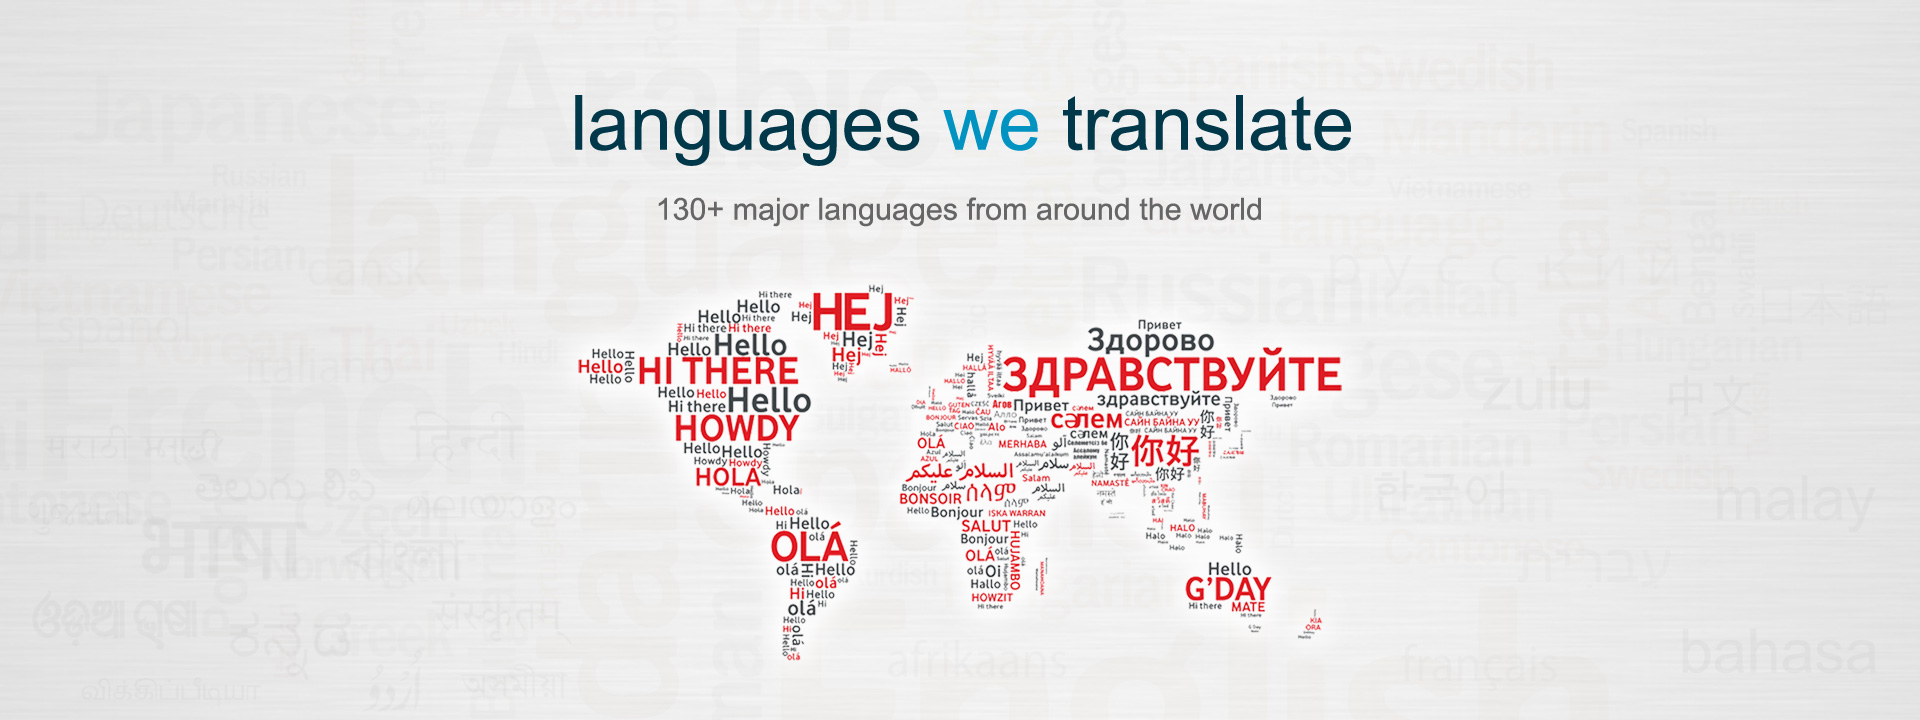 Languages We Translate